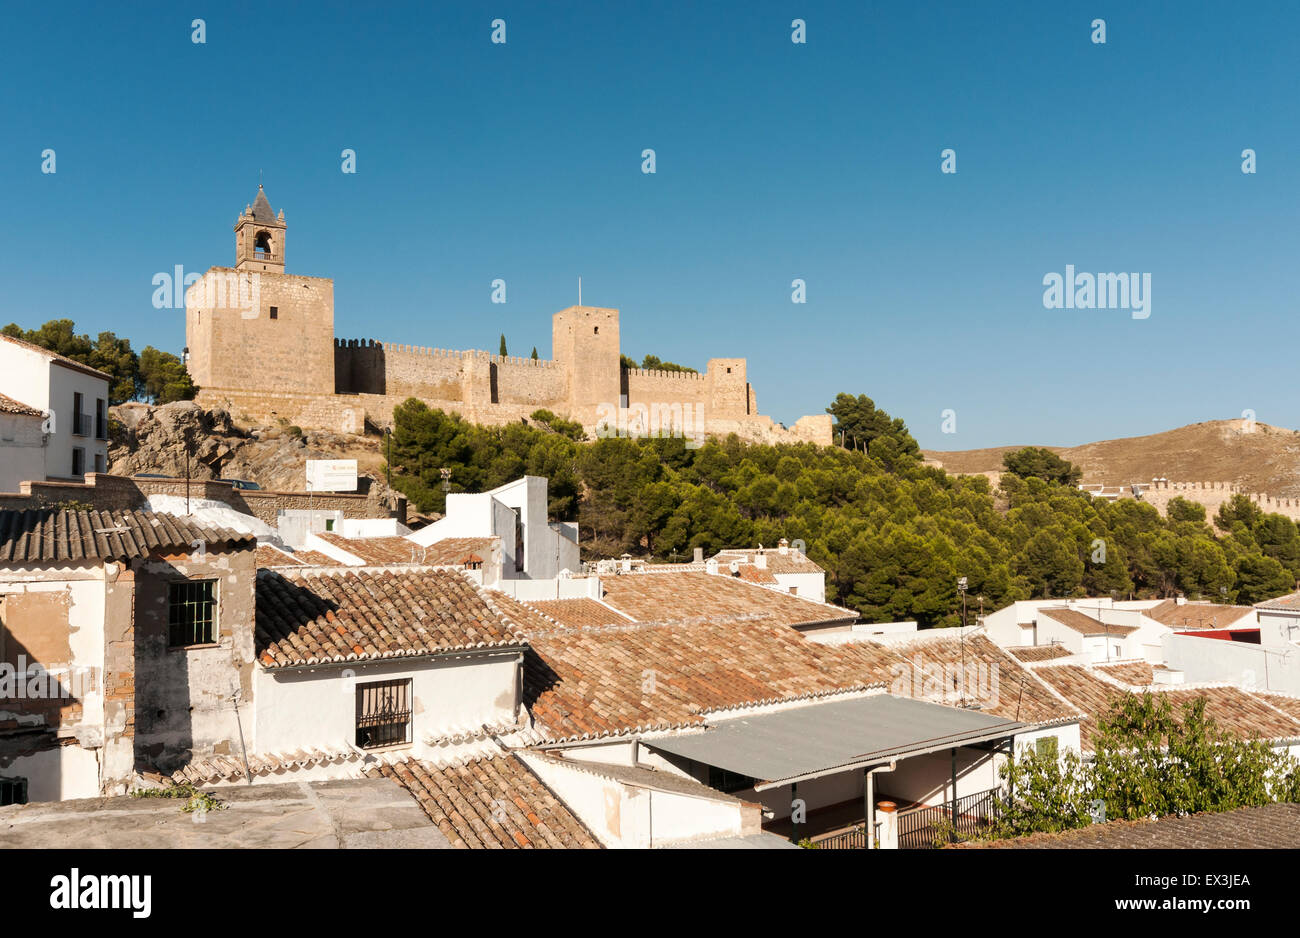 Alcazaba of Antequera, Andalusia, Spain - Stock Image